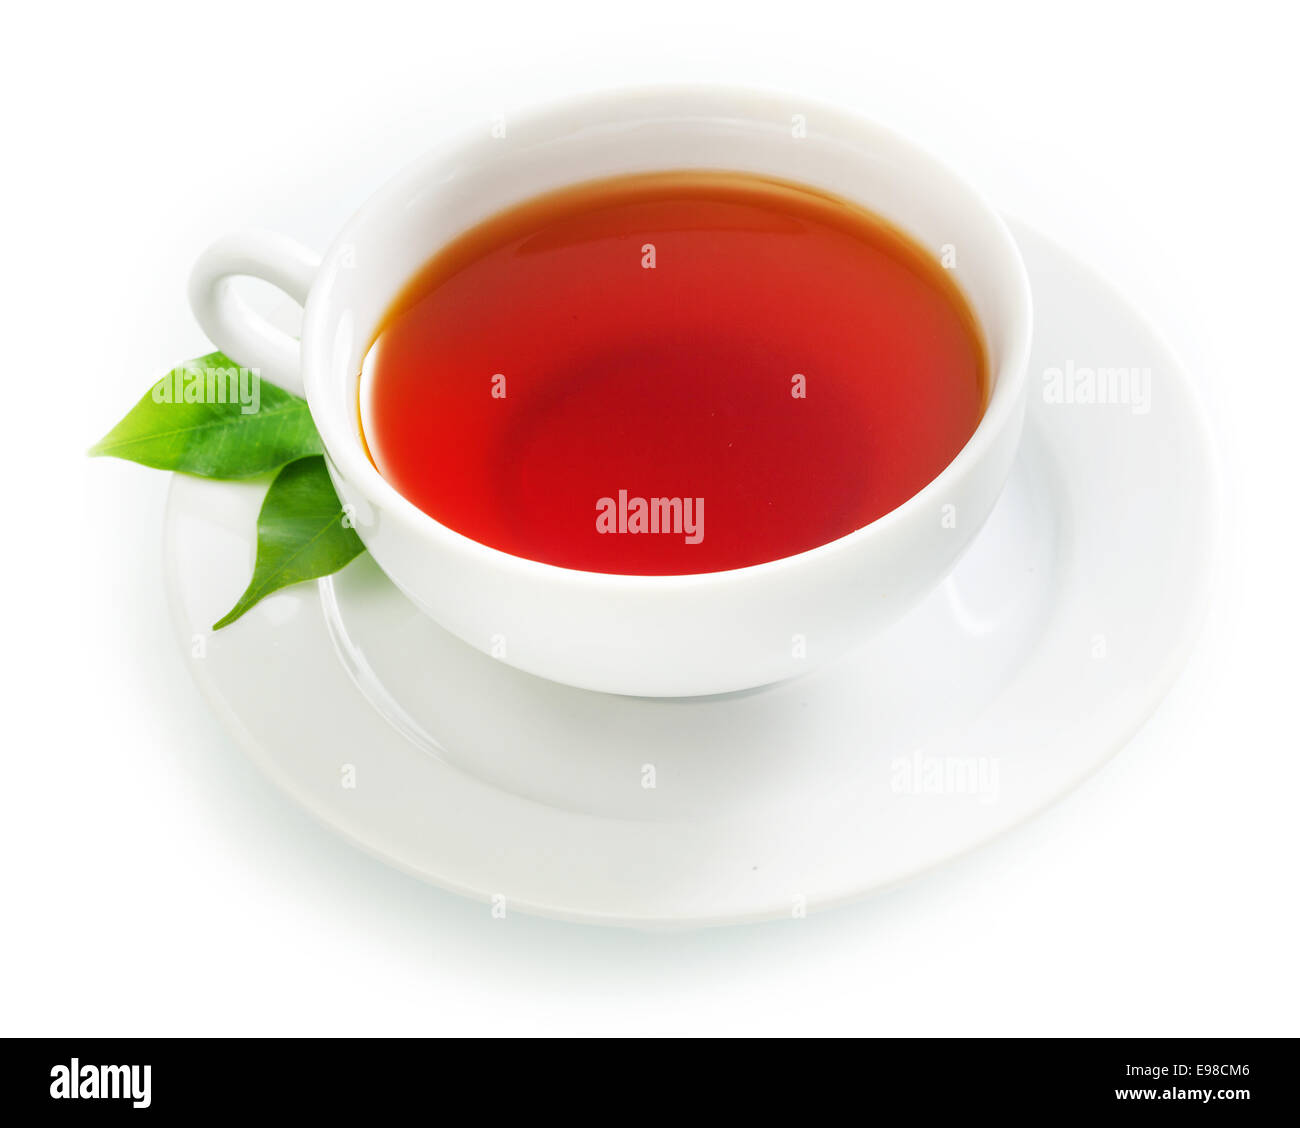 Cup of fresh hot black tea in an elegant plain white cup and saucer with fresh green tea leaves over a white background - Stock Image